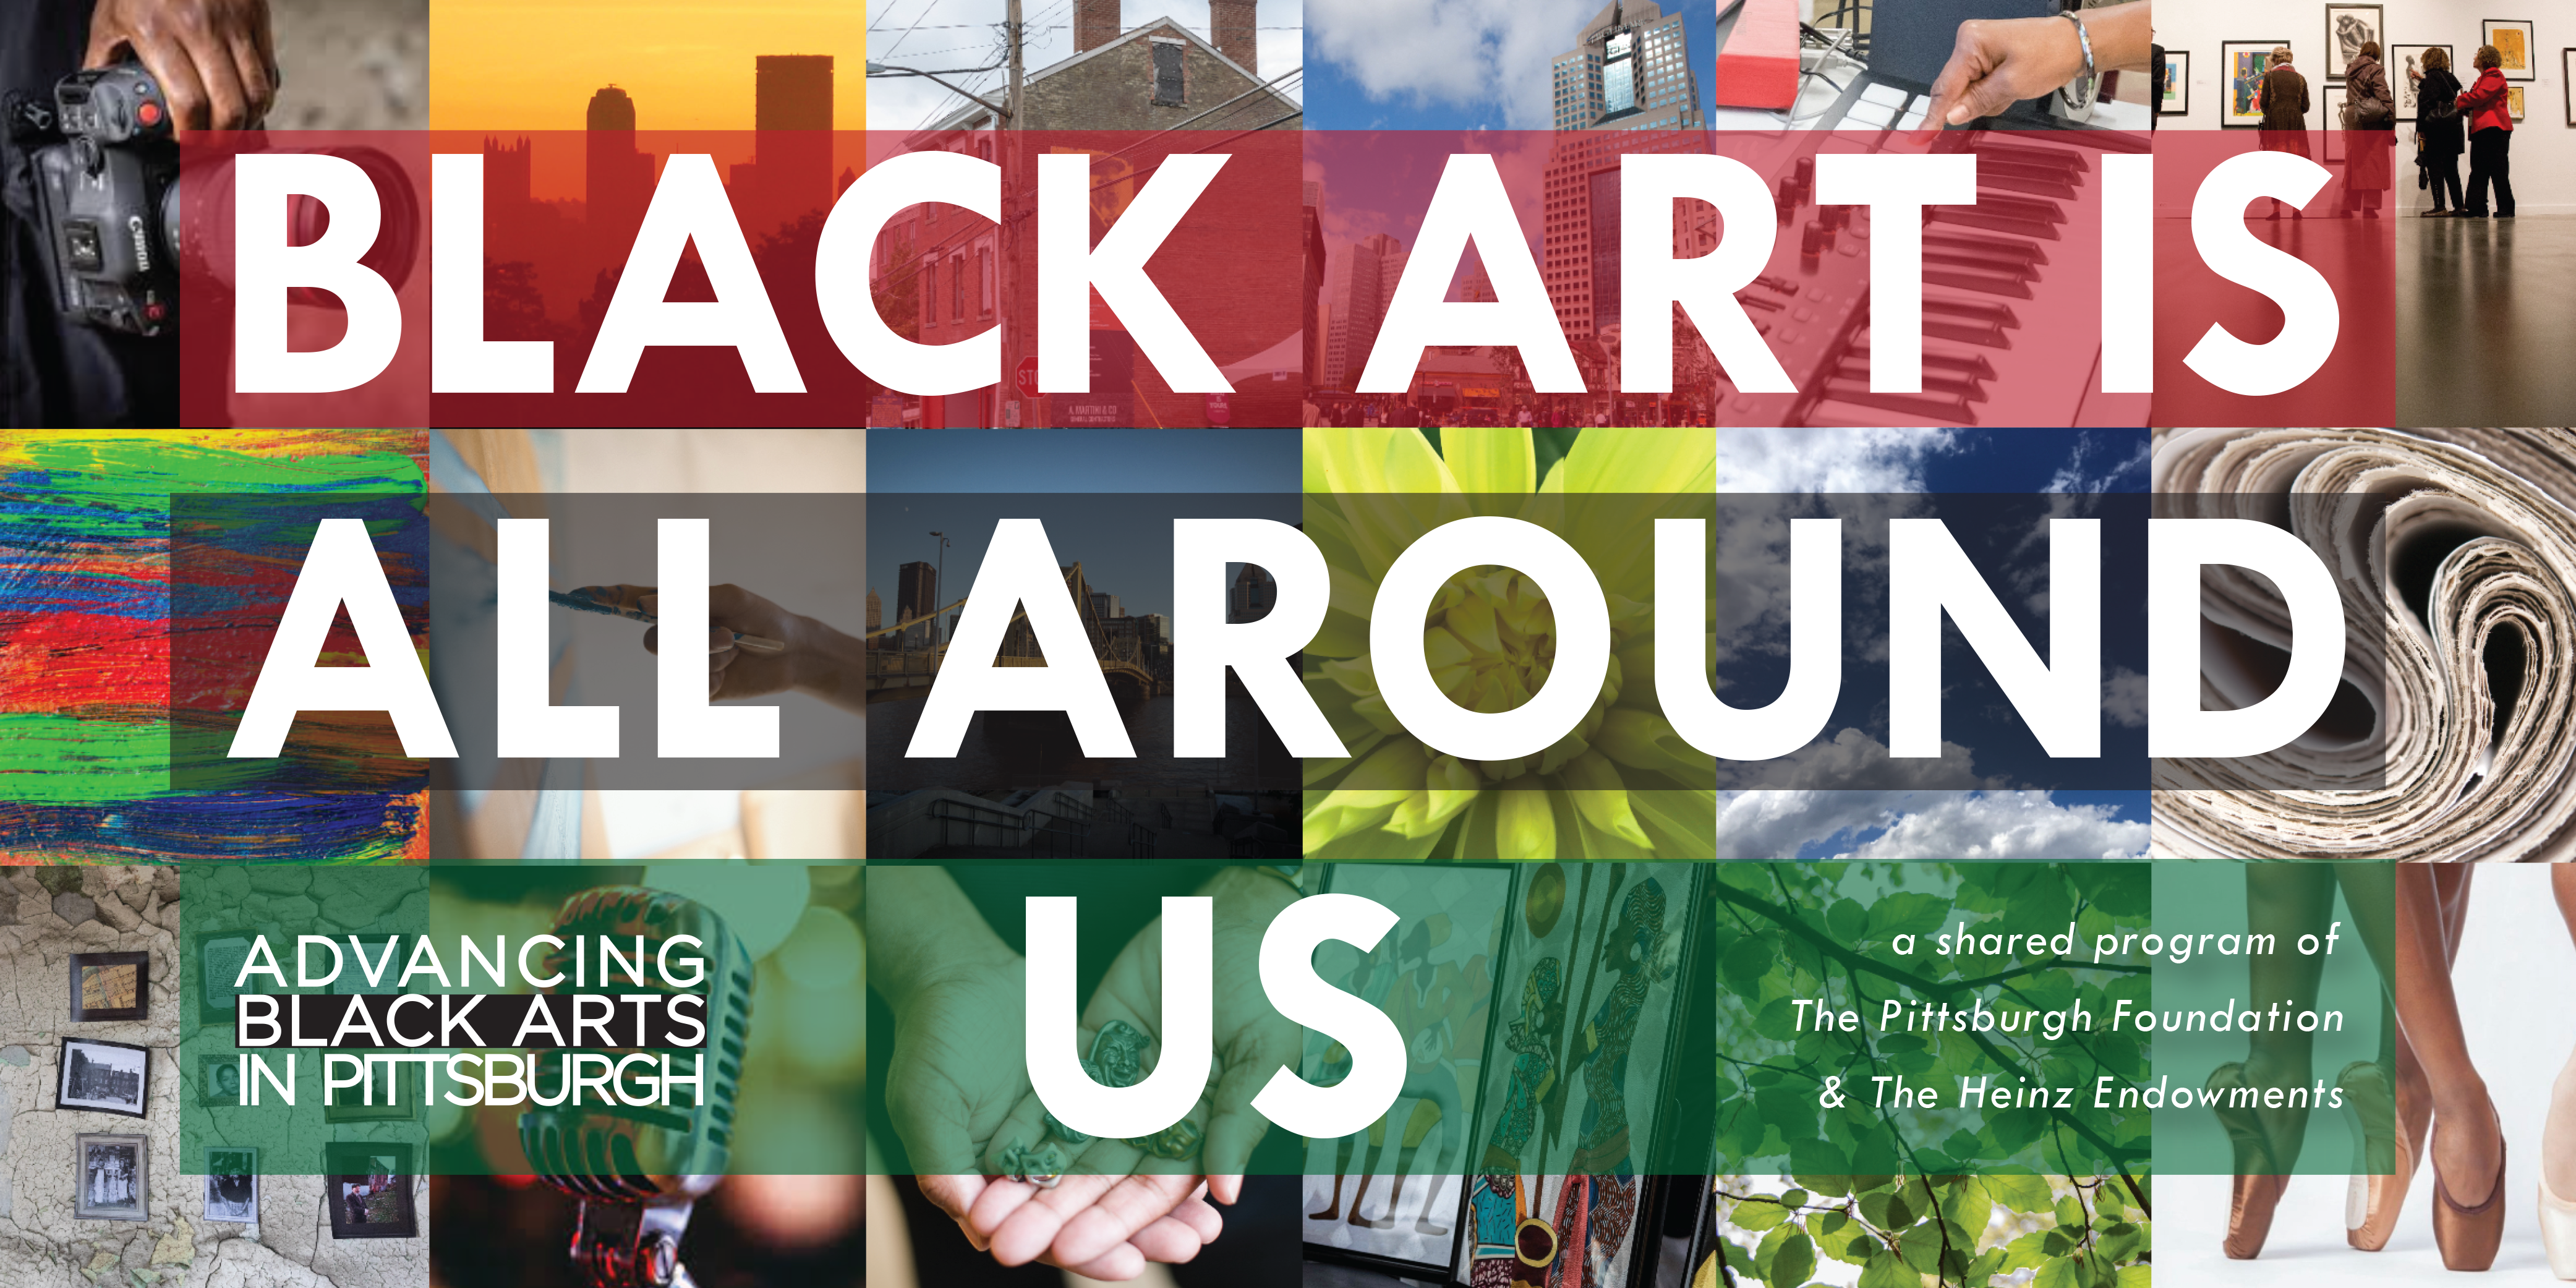 Advancing Black Arts in Pittsburgh is a shared arts initiative between The Pittsburgh Foundation and The Heinz Endowments.